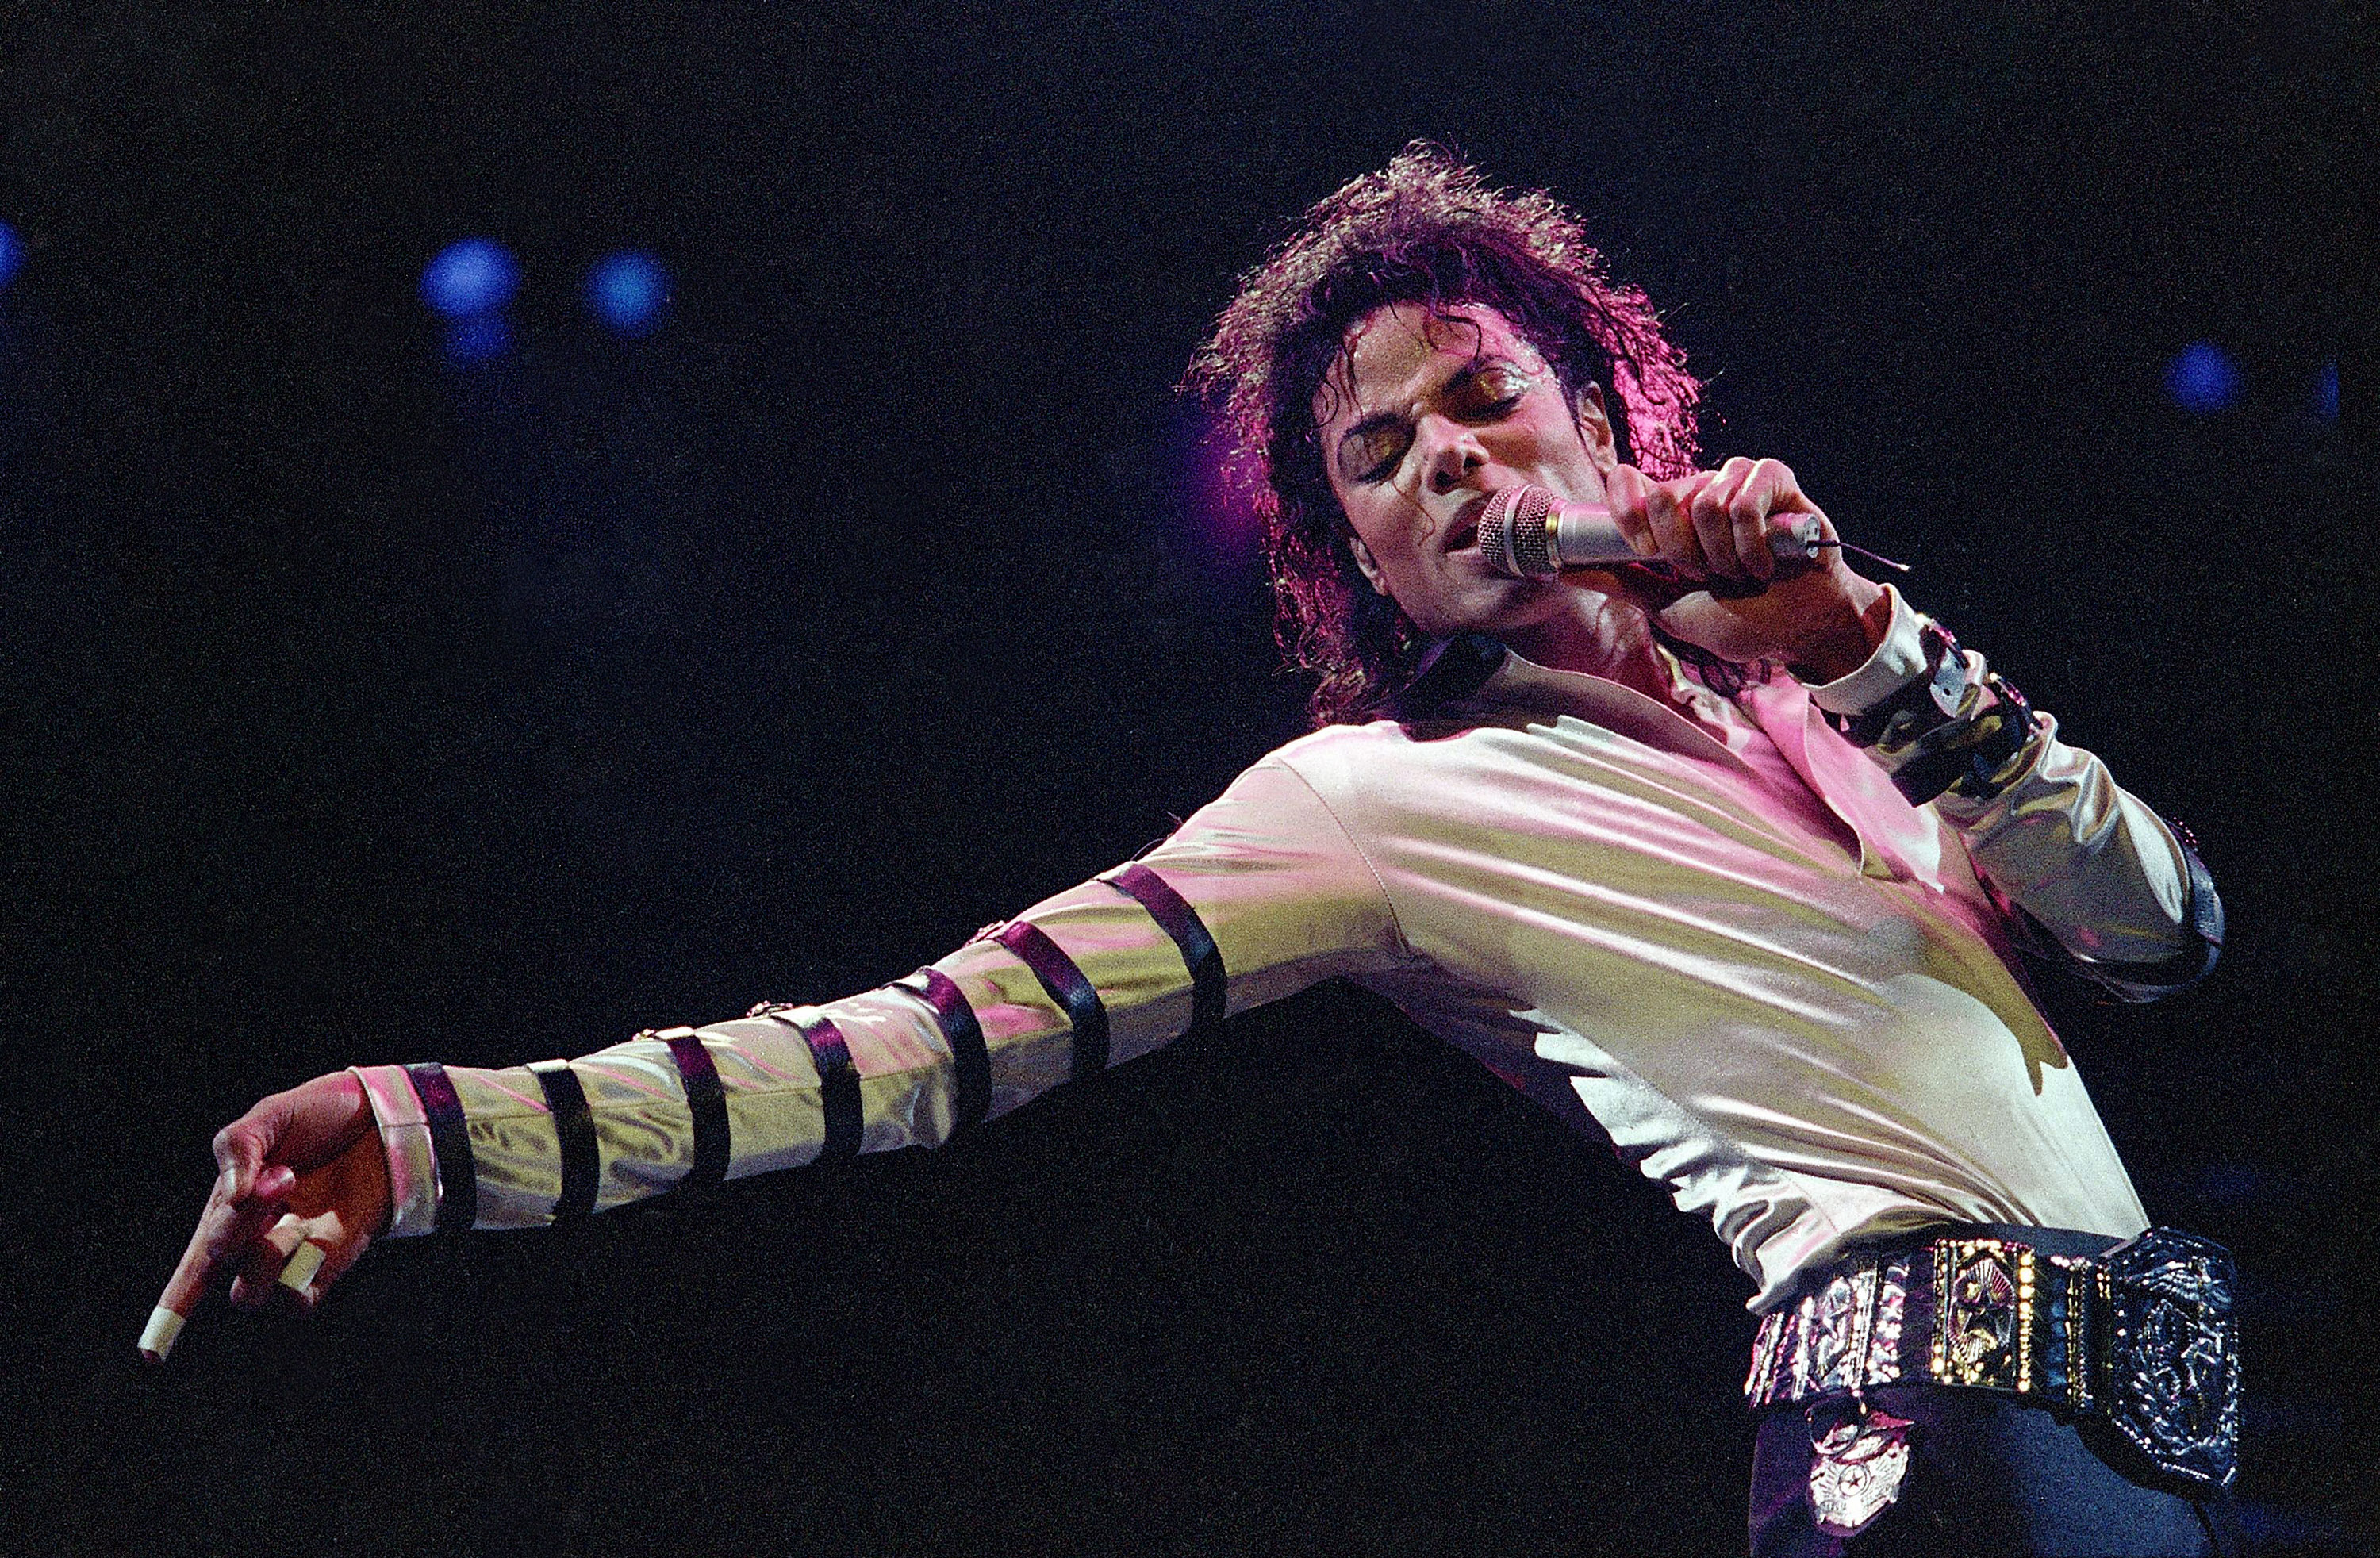 FILE - In this Feb. 24, 1988 file photo, Michael Jackson leans, points and sings, dances and struts during the opening performance of his 13-city US tour, in Kansas City. Photo: Reuters